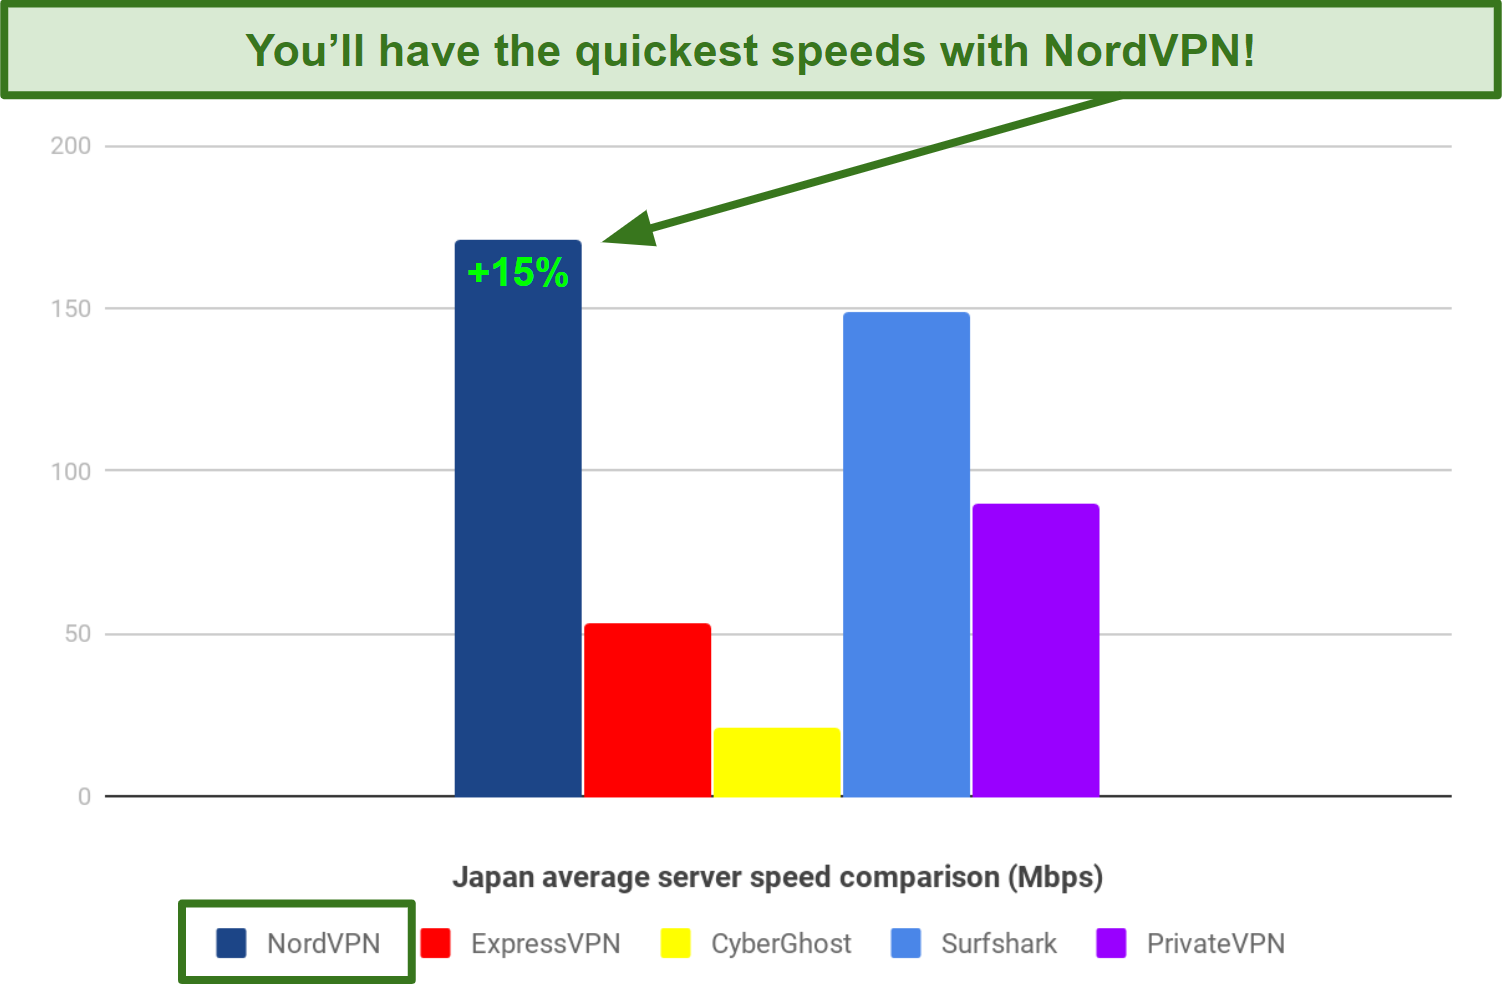 A bar chart showing speed differences between NordVPN, ExpressVPN, CyberGhost, Surfshark, and PrivateVPN, with NordVPN being the fastest